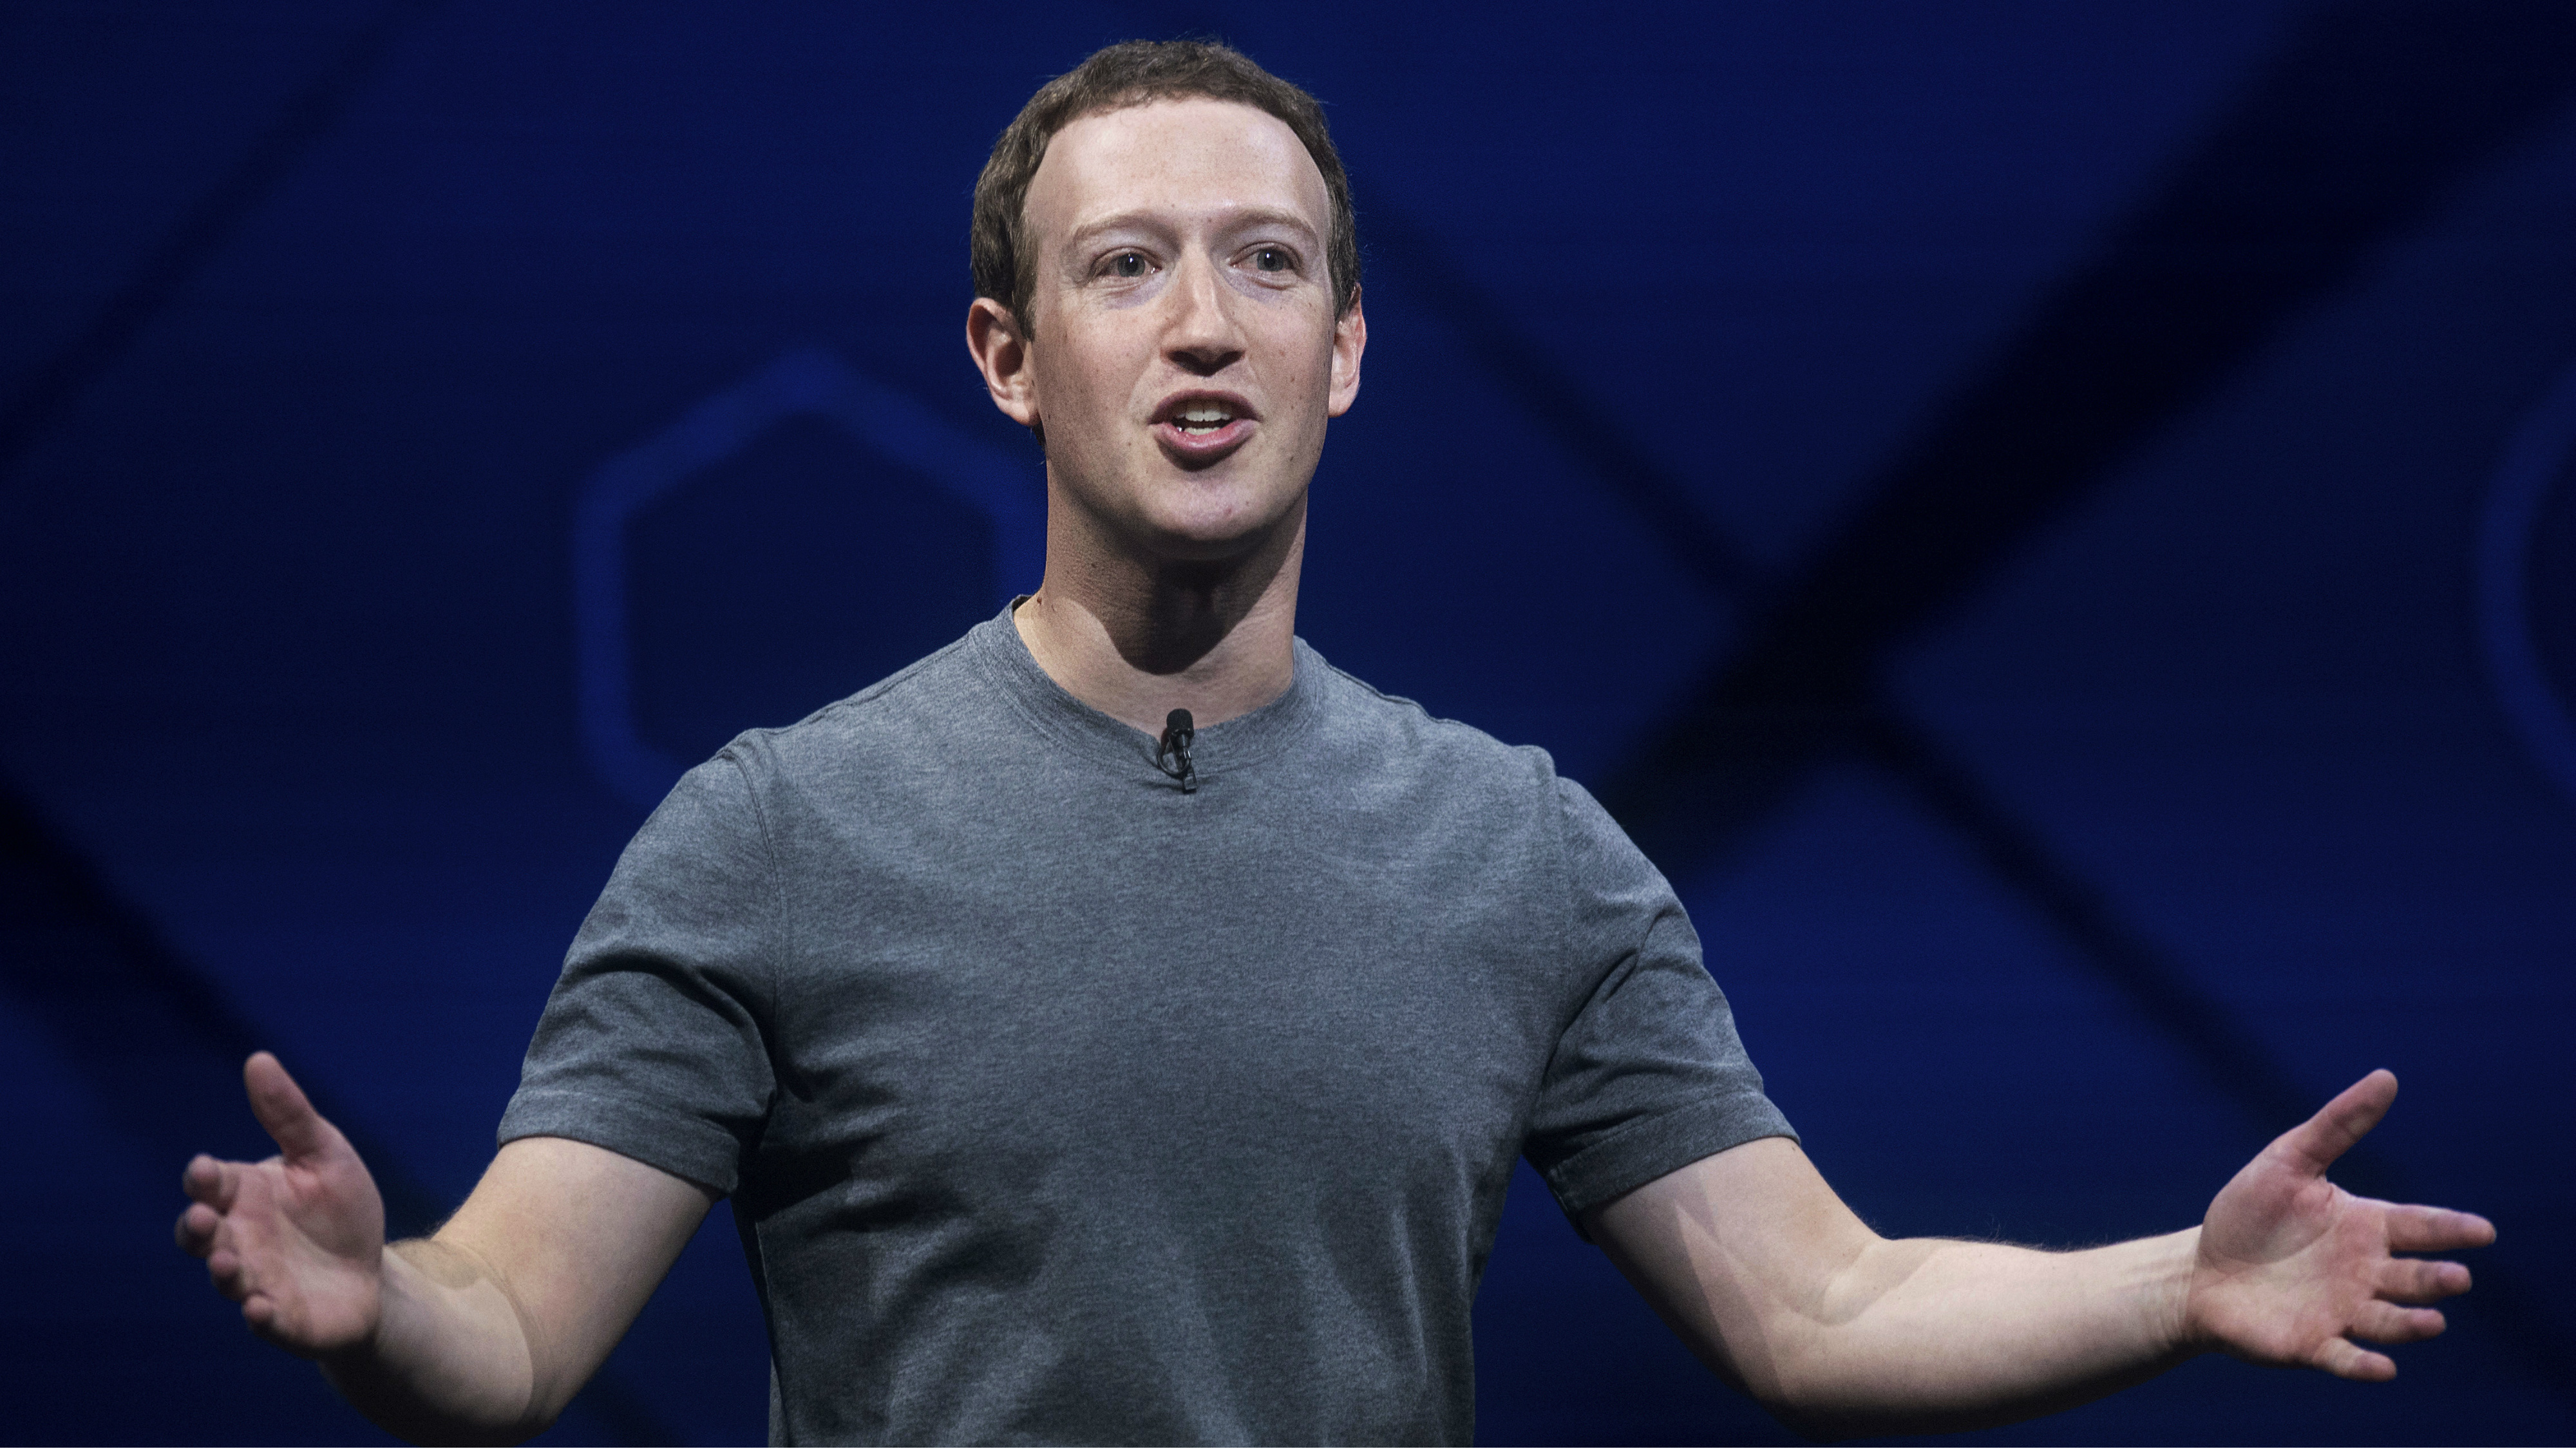 Mark Zuckerberg talking at a conference.